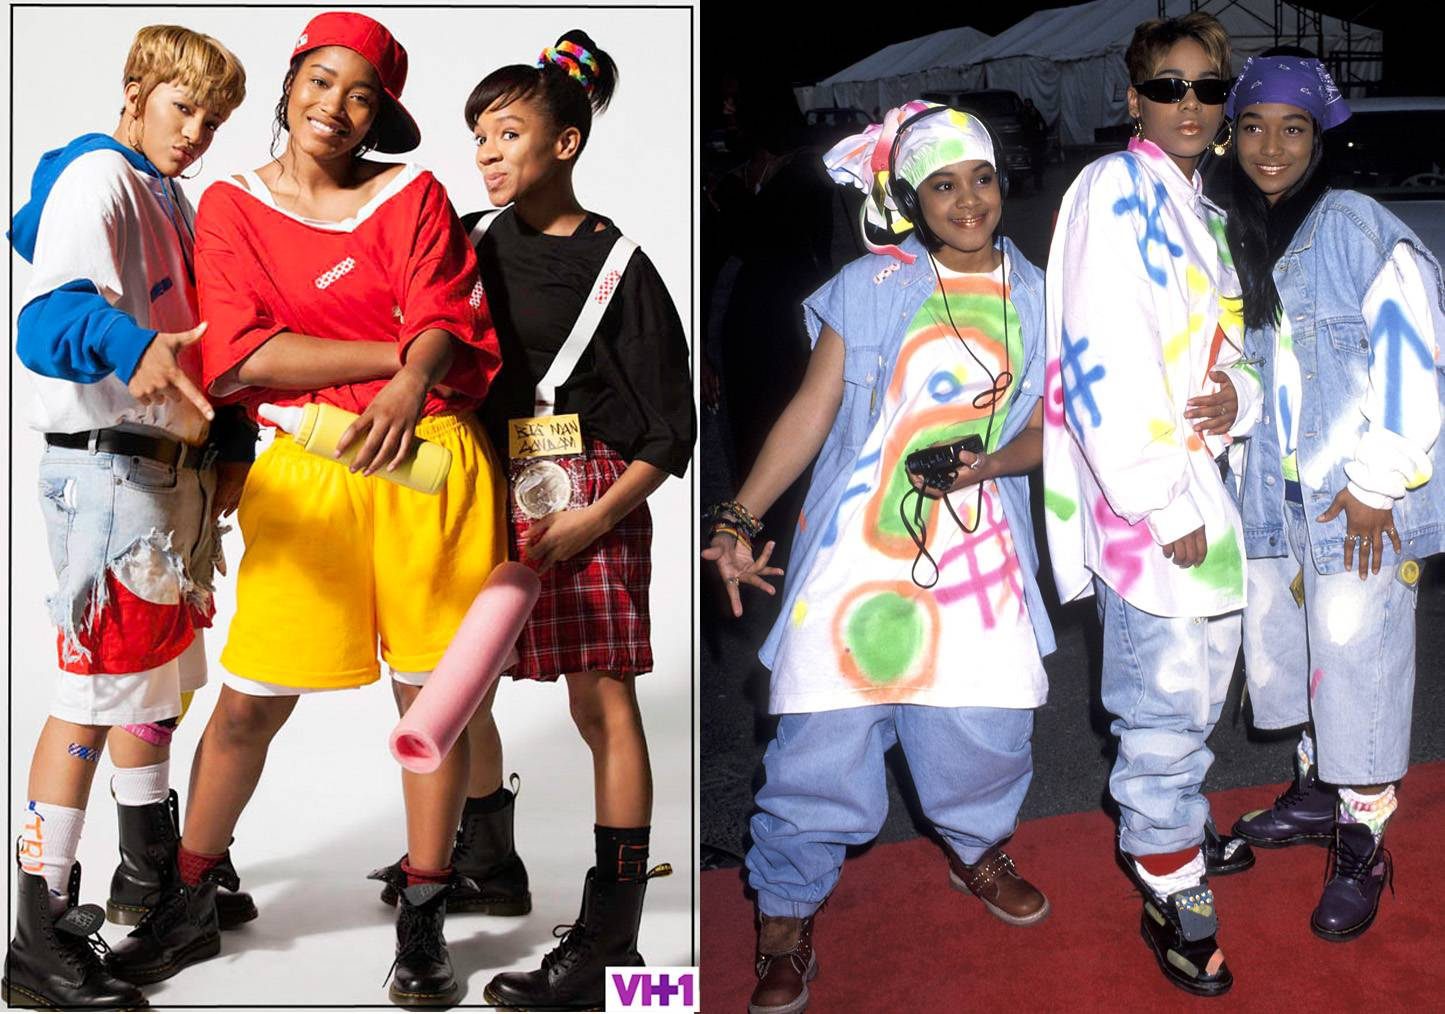 Crazy Sexy Cool: The TLC Story - T-Boz, Chilli and Left-Eye's surviving the music industry tales were documented in this VH1 movie.Drew Sidora, KeKe Palmer and Lil' Mamareceived rave reviews as the dynamic trio and the premiere brought in a history-making 4.5 million-plus viewers.(Photos from left: VH1, Ron Galella/WireImage)